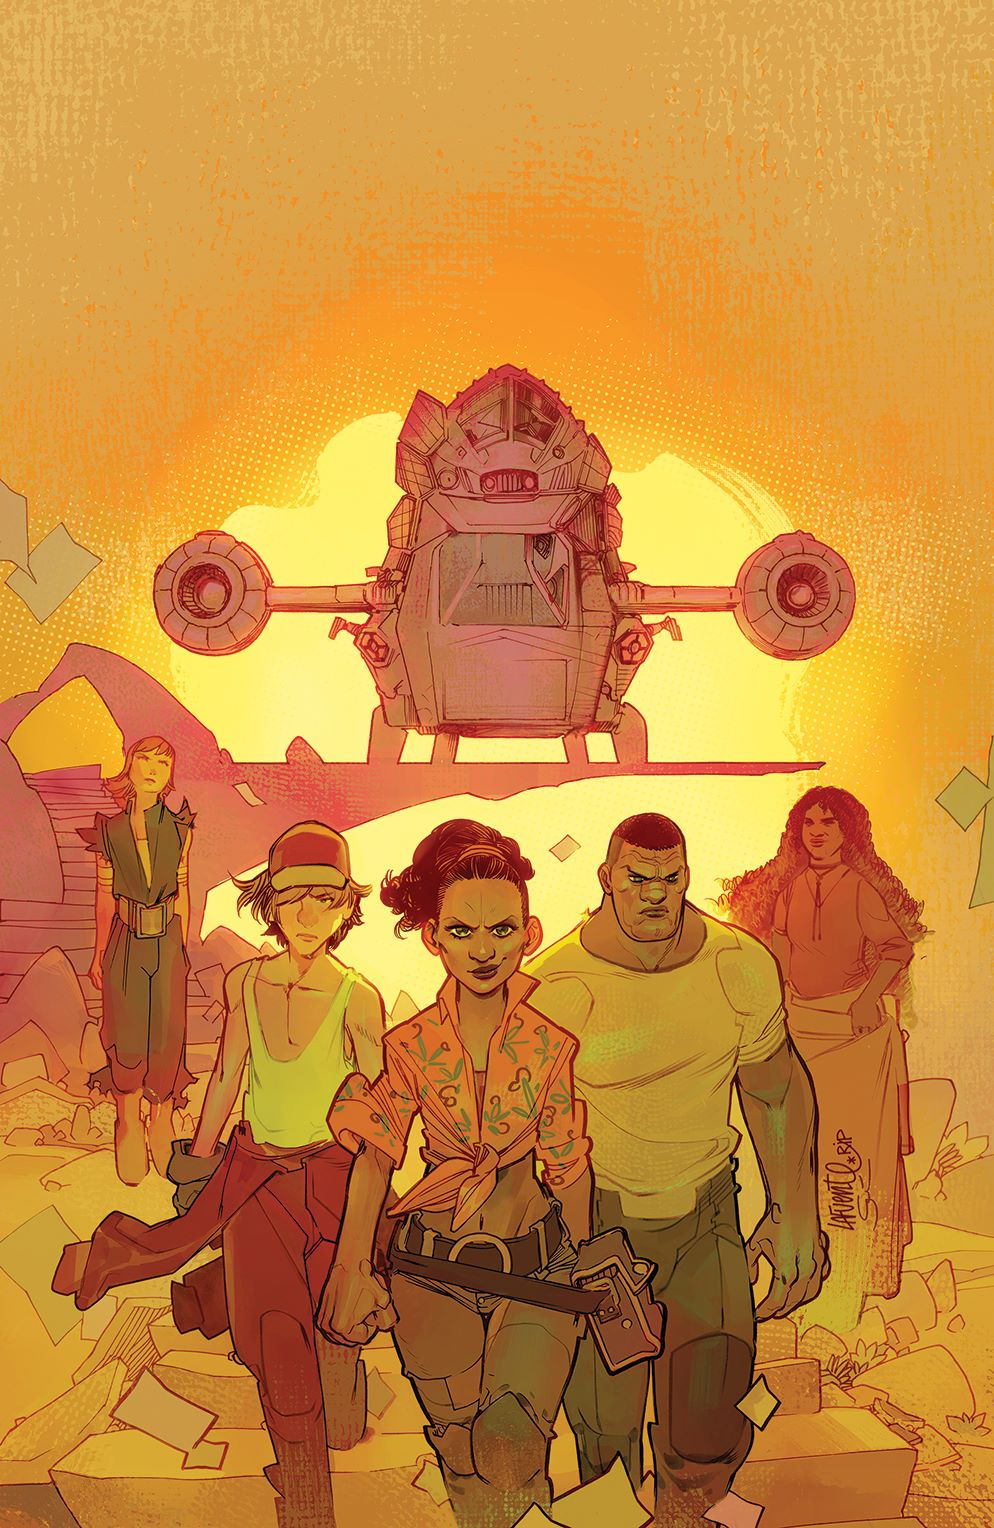 Firefly_BrandNewVerse_002_Cover_D_Variant ComicList Previews: FIREFLY A BRAND NEW 'VERSE #2 (OF 6)